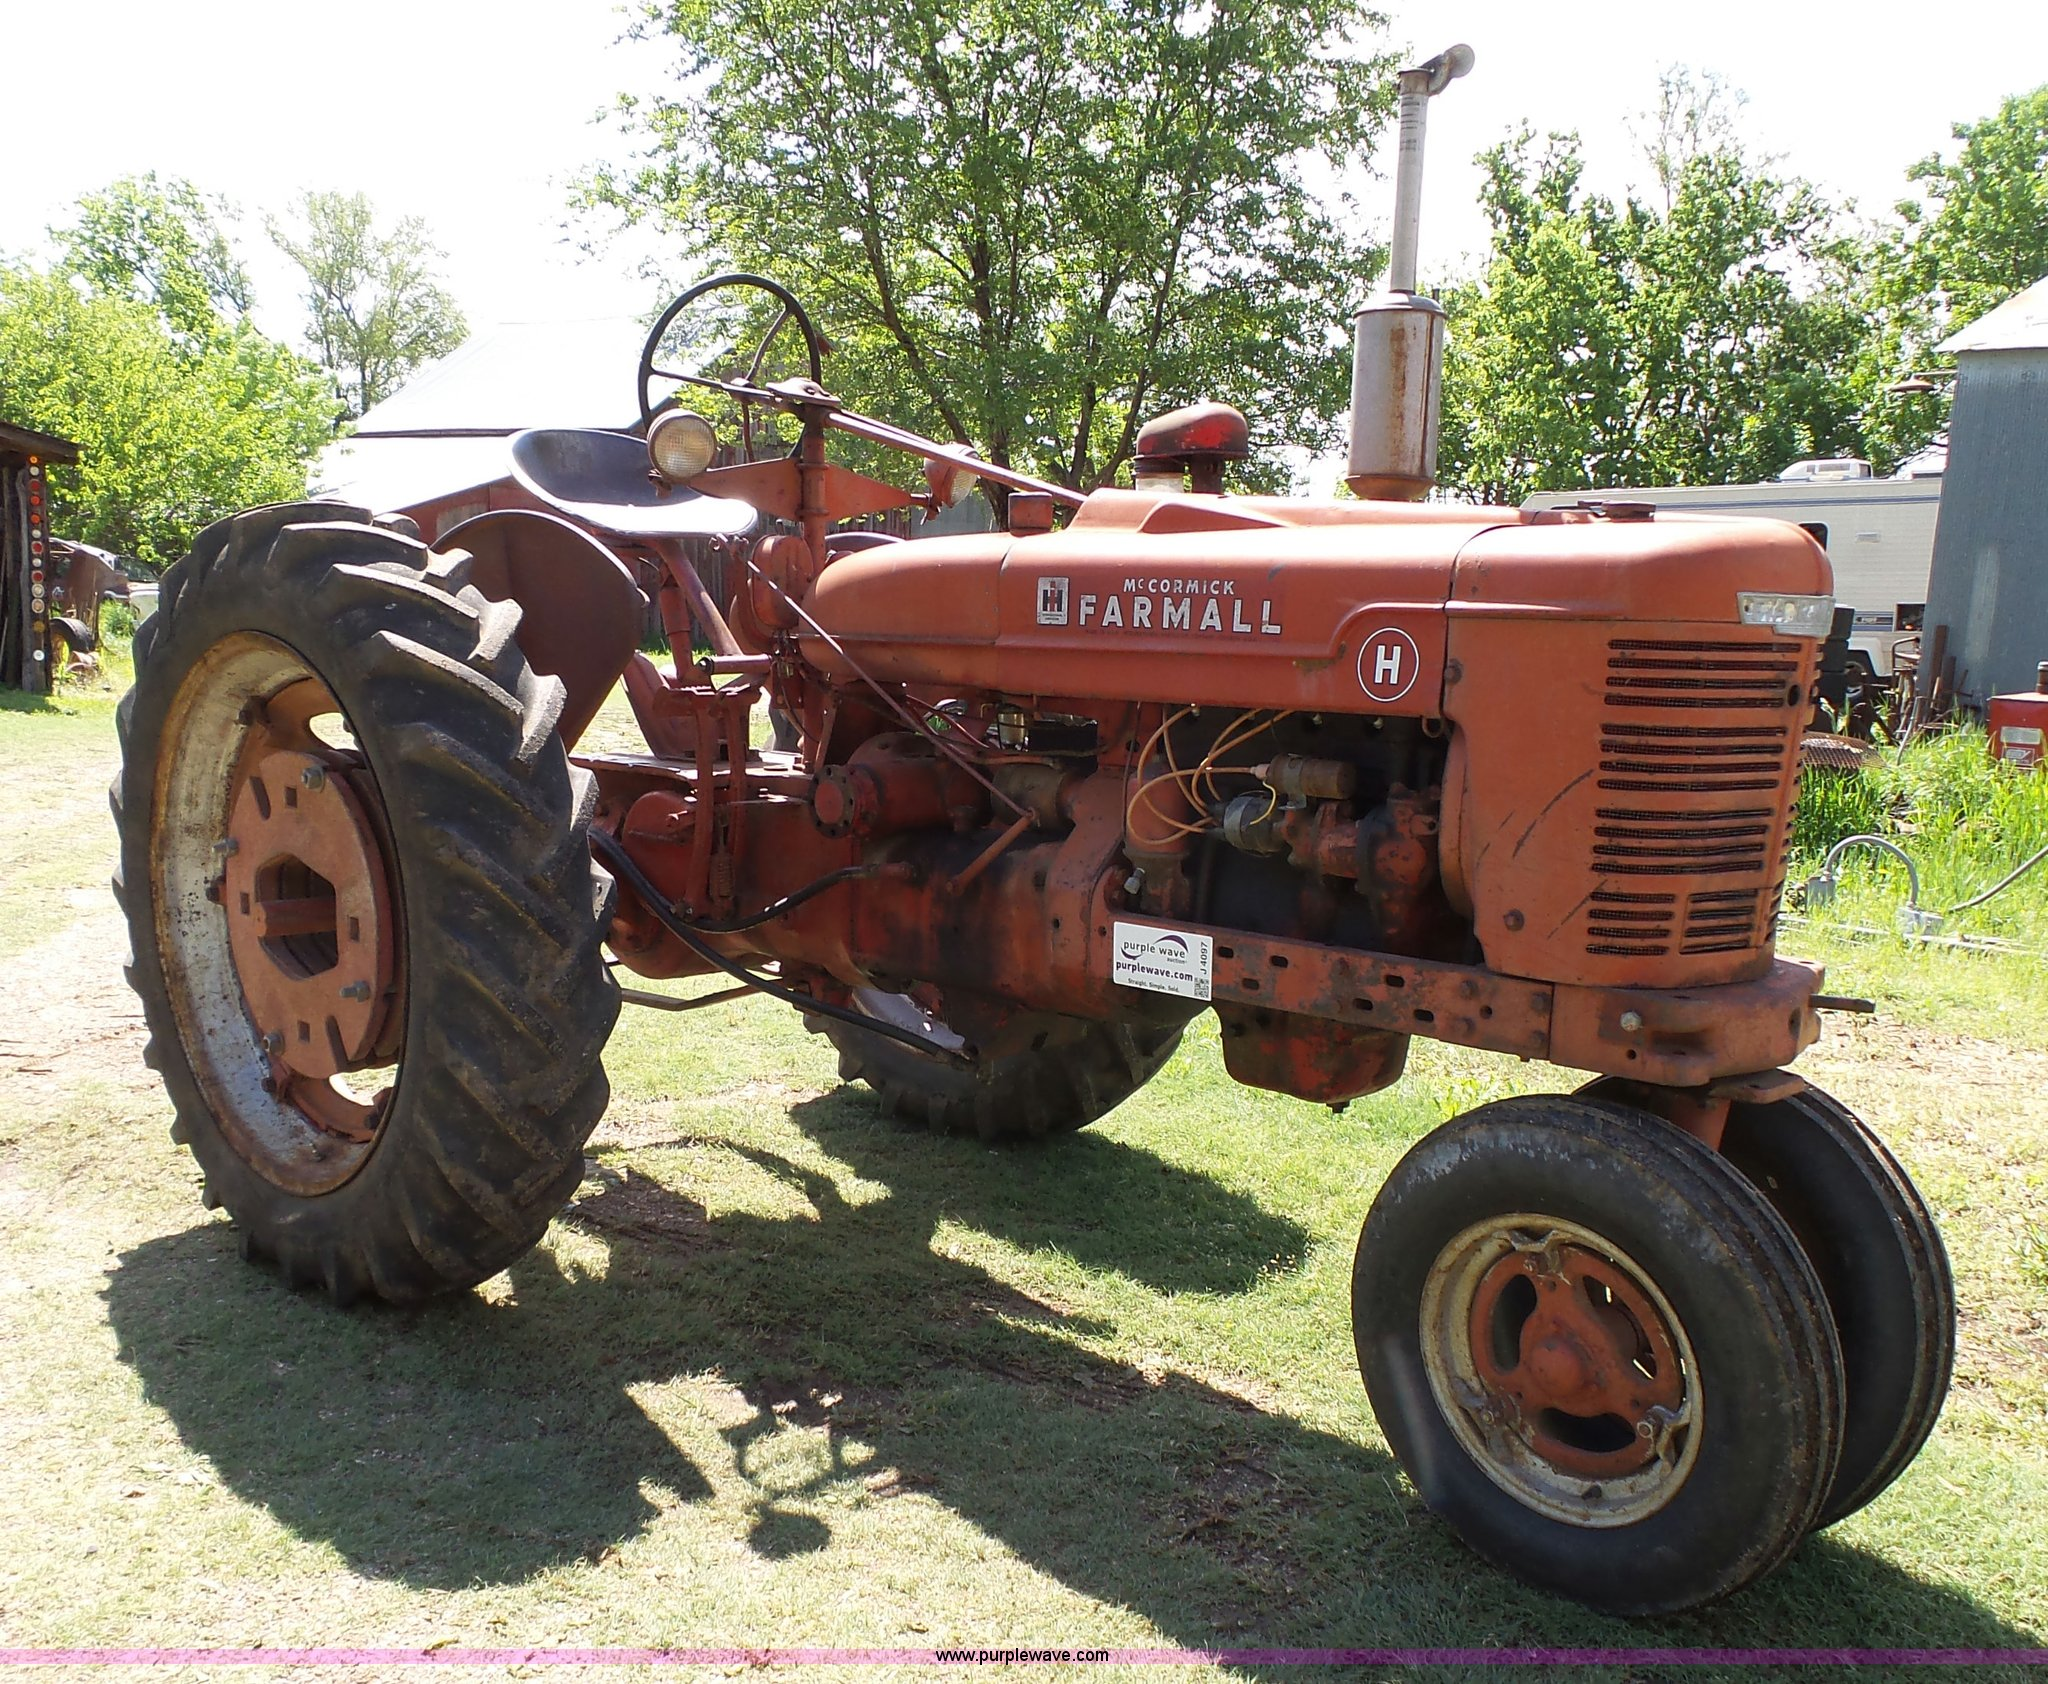 J4097 image for item J4097 1950 Farmall H tractor